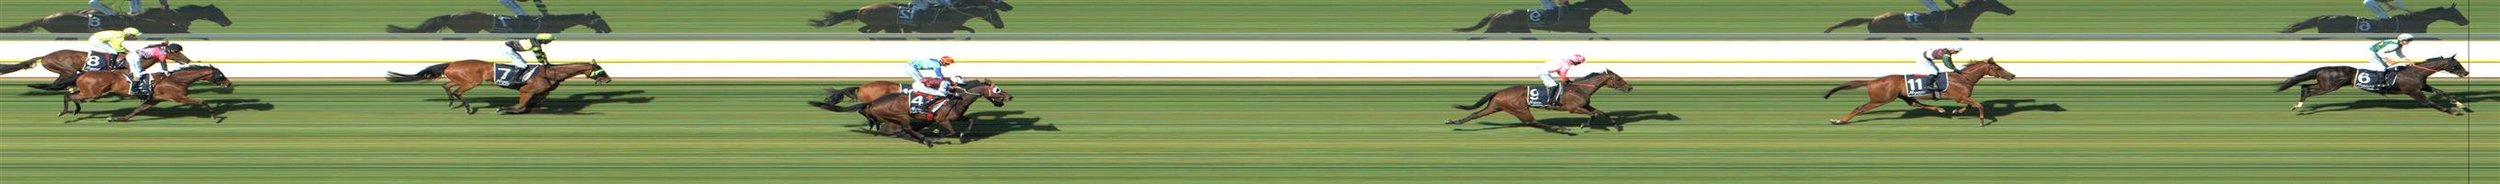 Warrnambool Race 8 No.4 Truly High @ $4.80 (1.32 UNITS WIN)   Result : 4th at SP $7.50. Eventual winner, High Mode, made its move on the home turn and entering the straight had it won as the others were too far back and off the bit chasing for minor placings. Outcome -1.32 Units  Warrnambool Race 8 No.8 Penthouse Playboy @ $3.20 (2.28 UNITS WIN).  NB: This is a 4600m race ... hopefully the typical Weir fitness prevails. John Allen started off as a jumps jockey, so is a great judge of pace. Probably worth the QQ here as well.   Result : Unplaced at SP $2.80. Eventual winner, High Mode, made its move on the home turn and entering the straight had it won as the others were too far back and off the bit chasing for minor placings. Outcome -1.32 Units